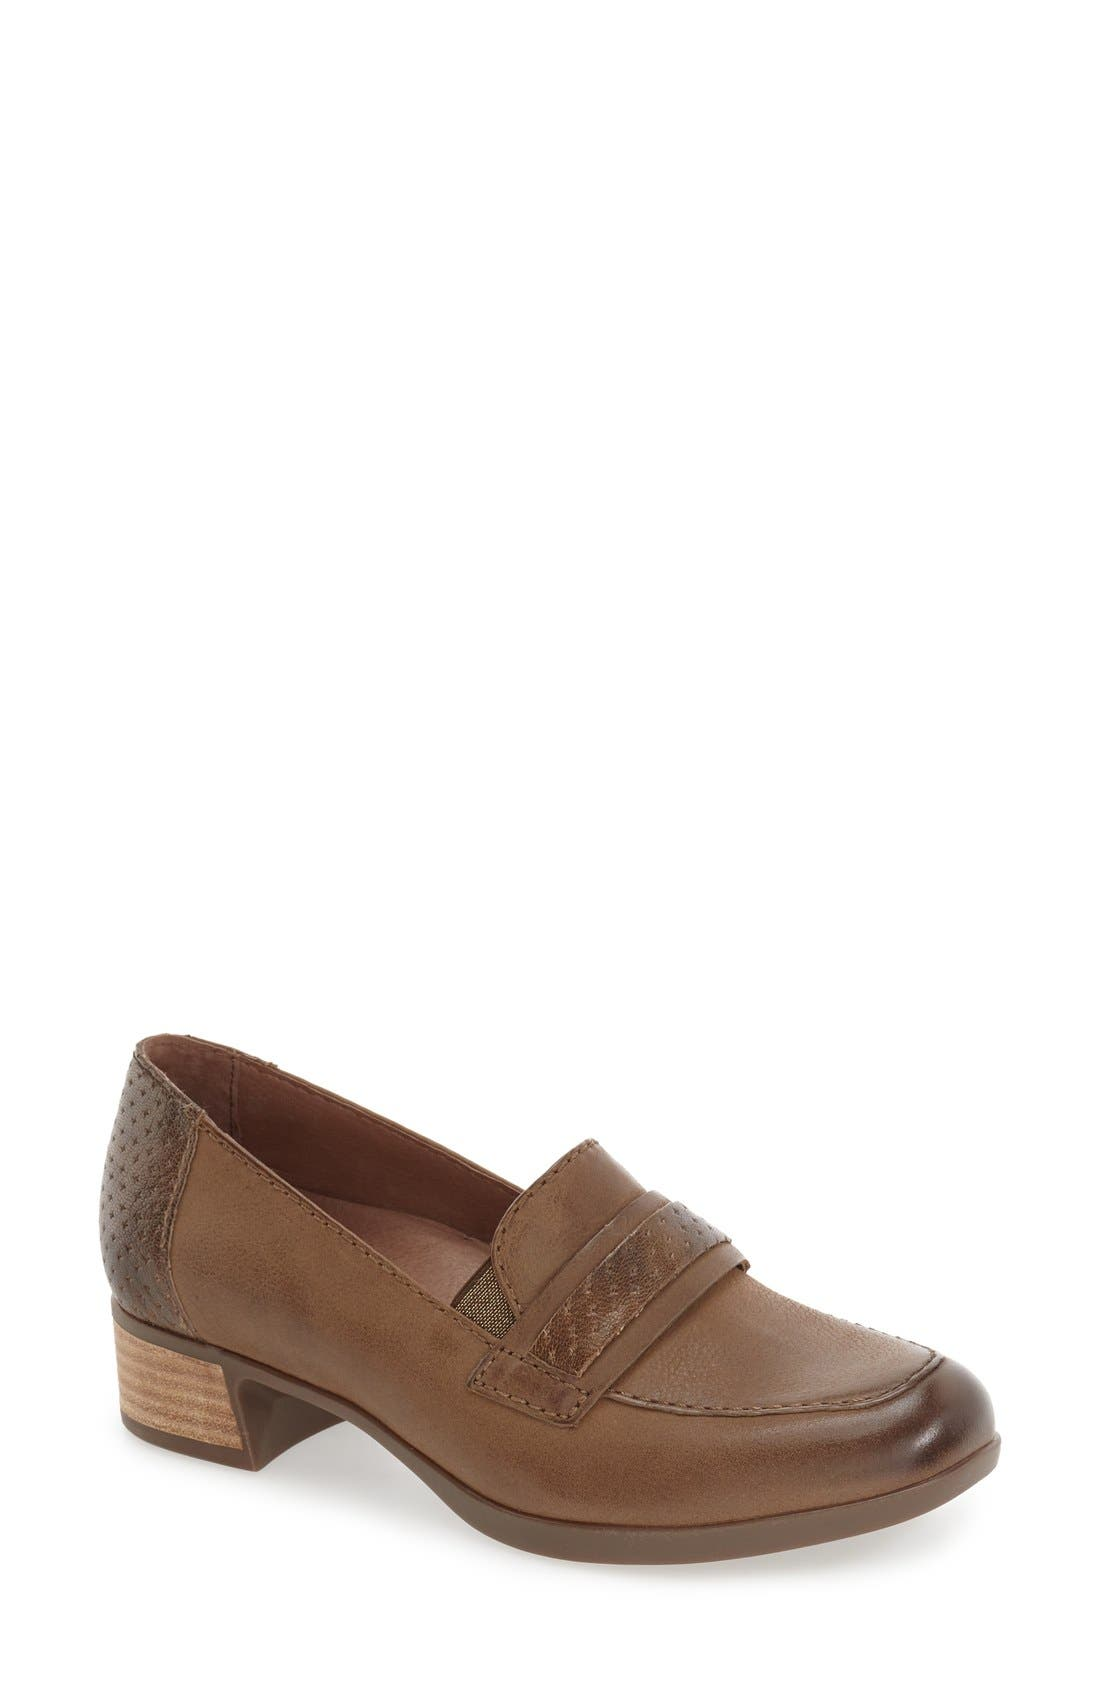 Dansko 'Lila' Loafer (Women)